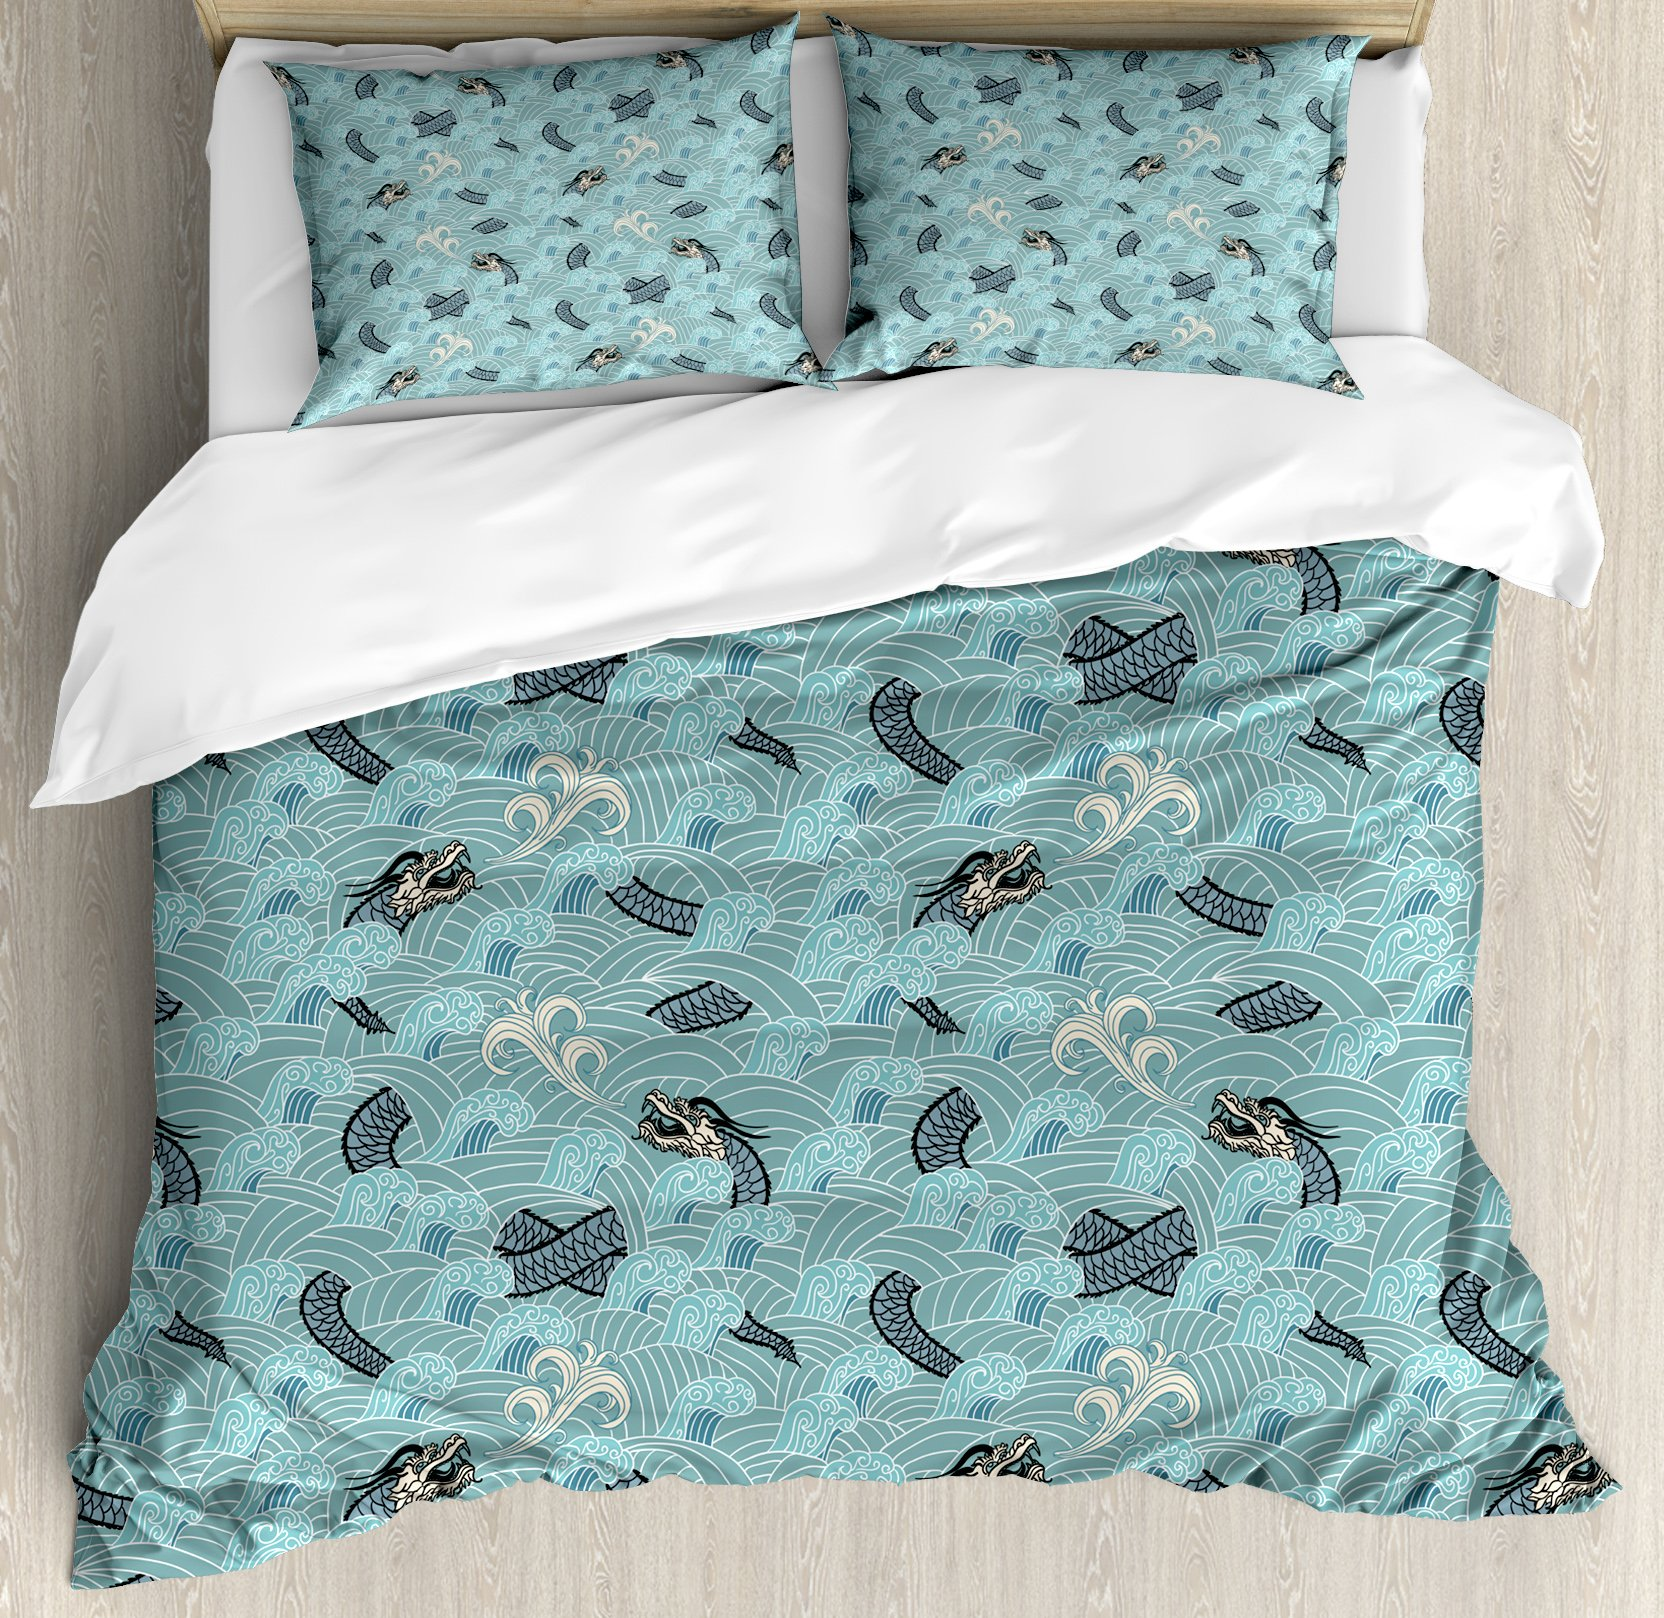 Japanese Wave Duvet Cover Set Queen Size by Ambesonne, Asian Style Pattern with Dragon Figures and Sea Waves Mythology Monster, Decorative 3 Piece Bedding Set with 2 Pillow Shams, Teal Grey White